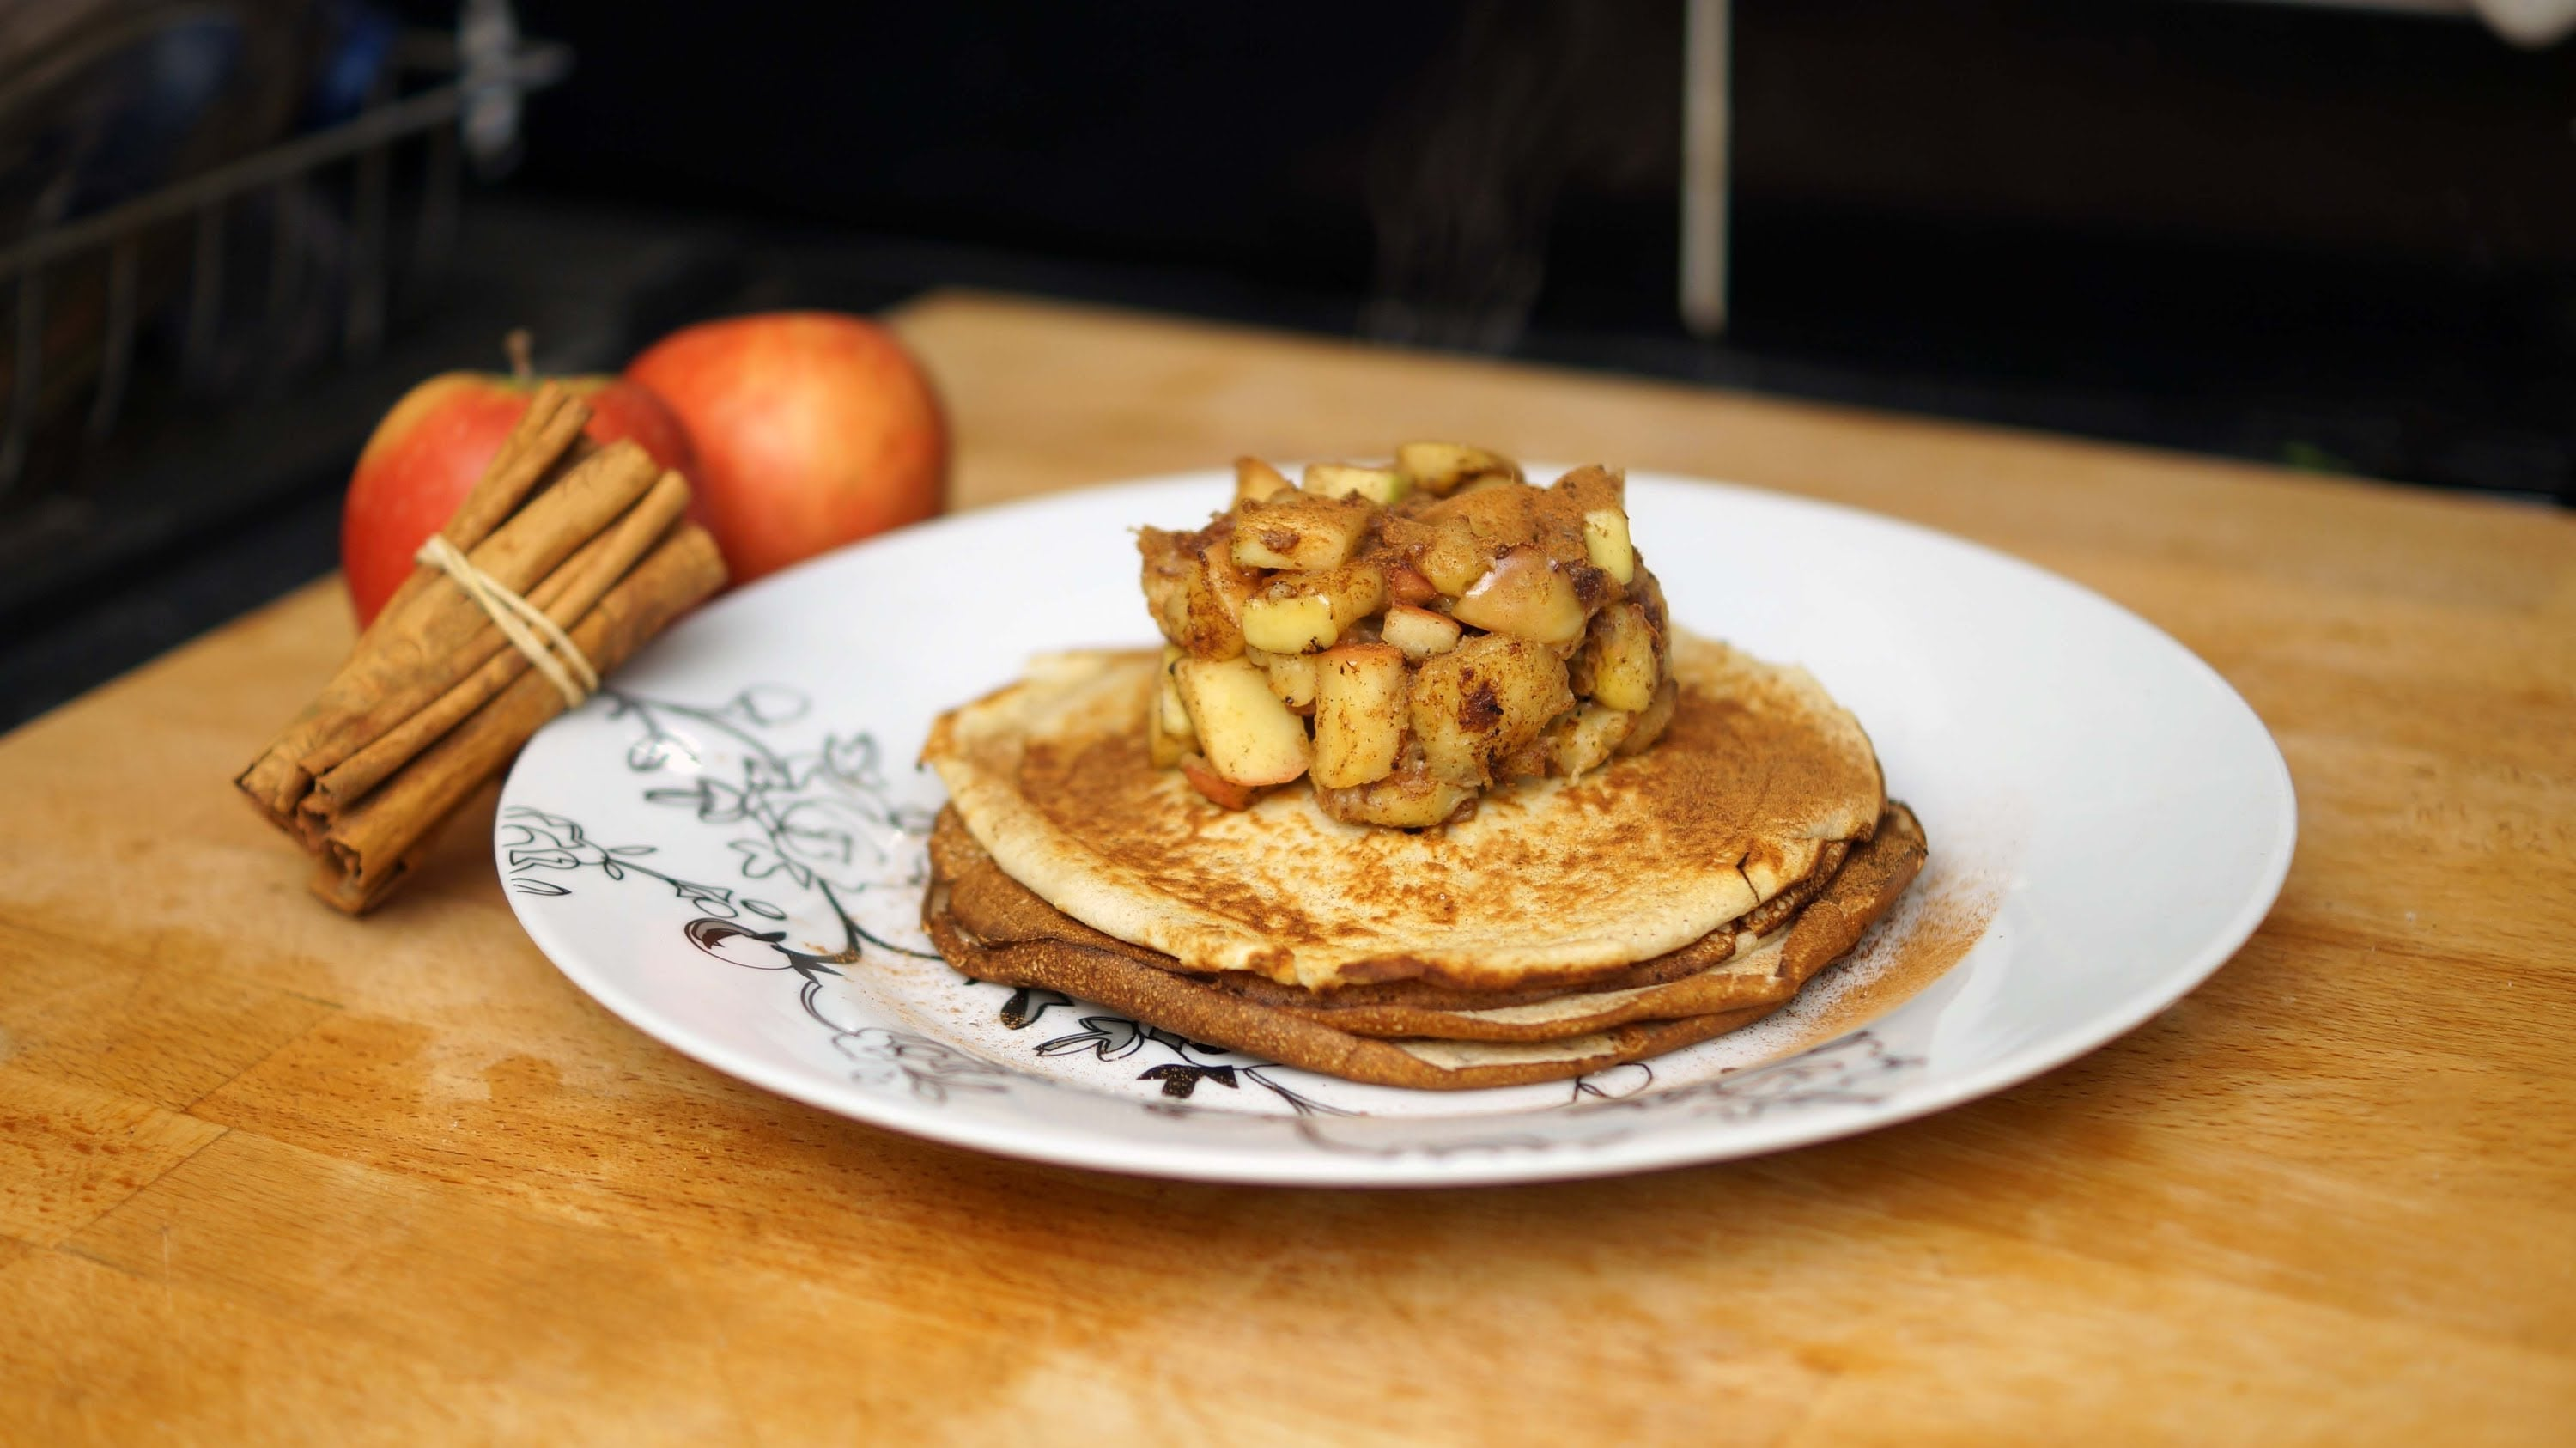 Apple And Cinnamon Protein Pancakes Recipe for Pancake Day